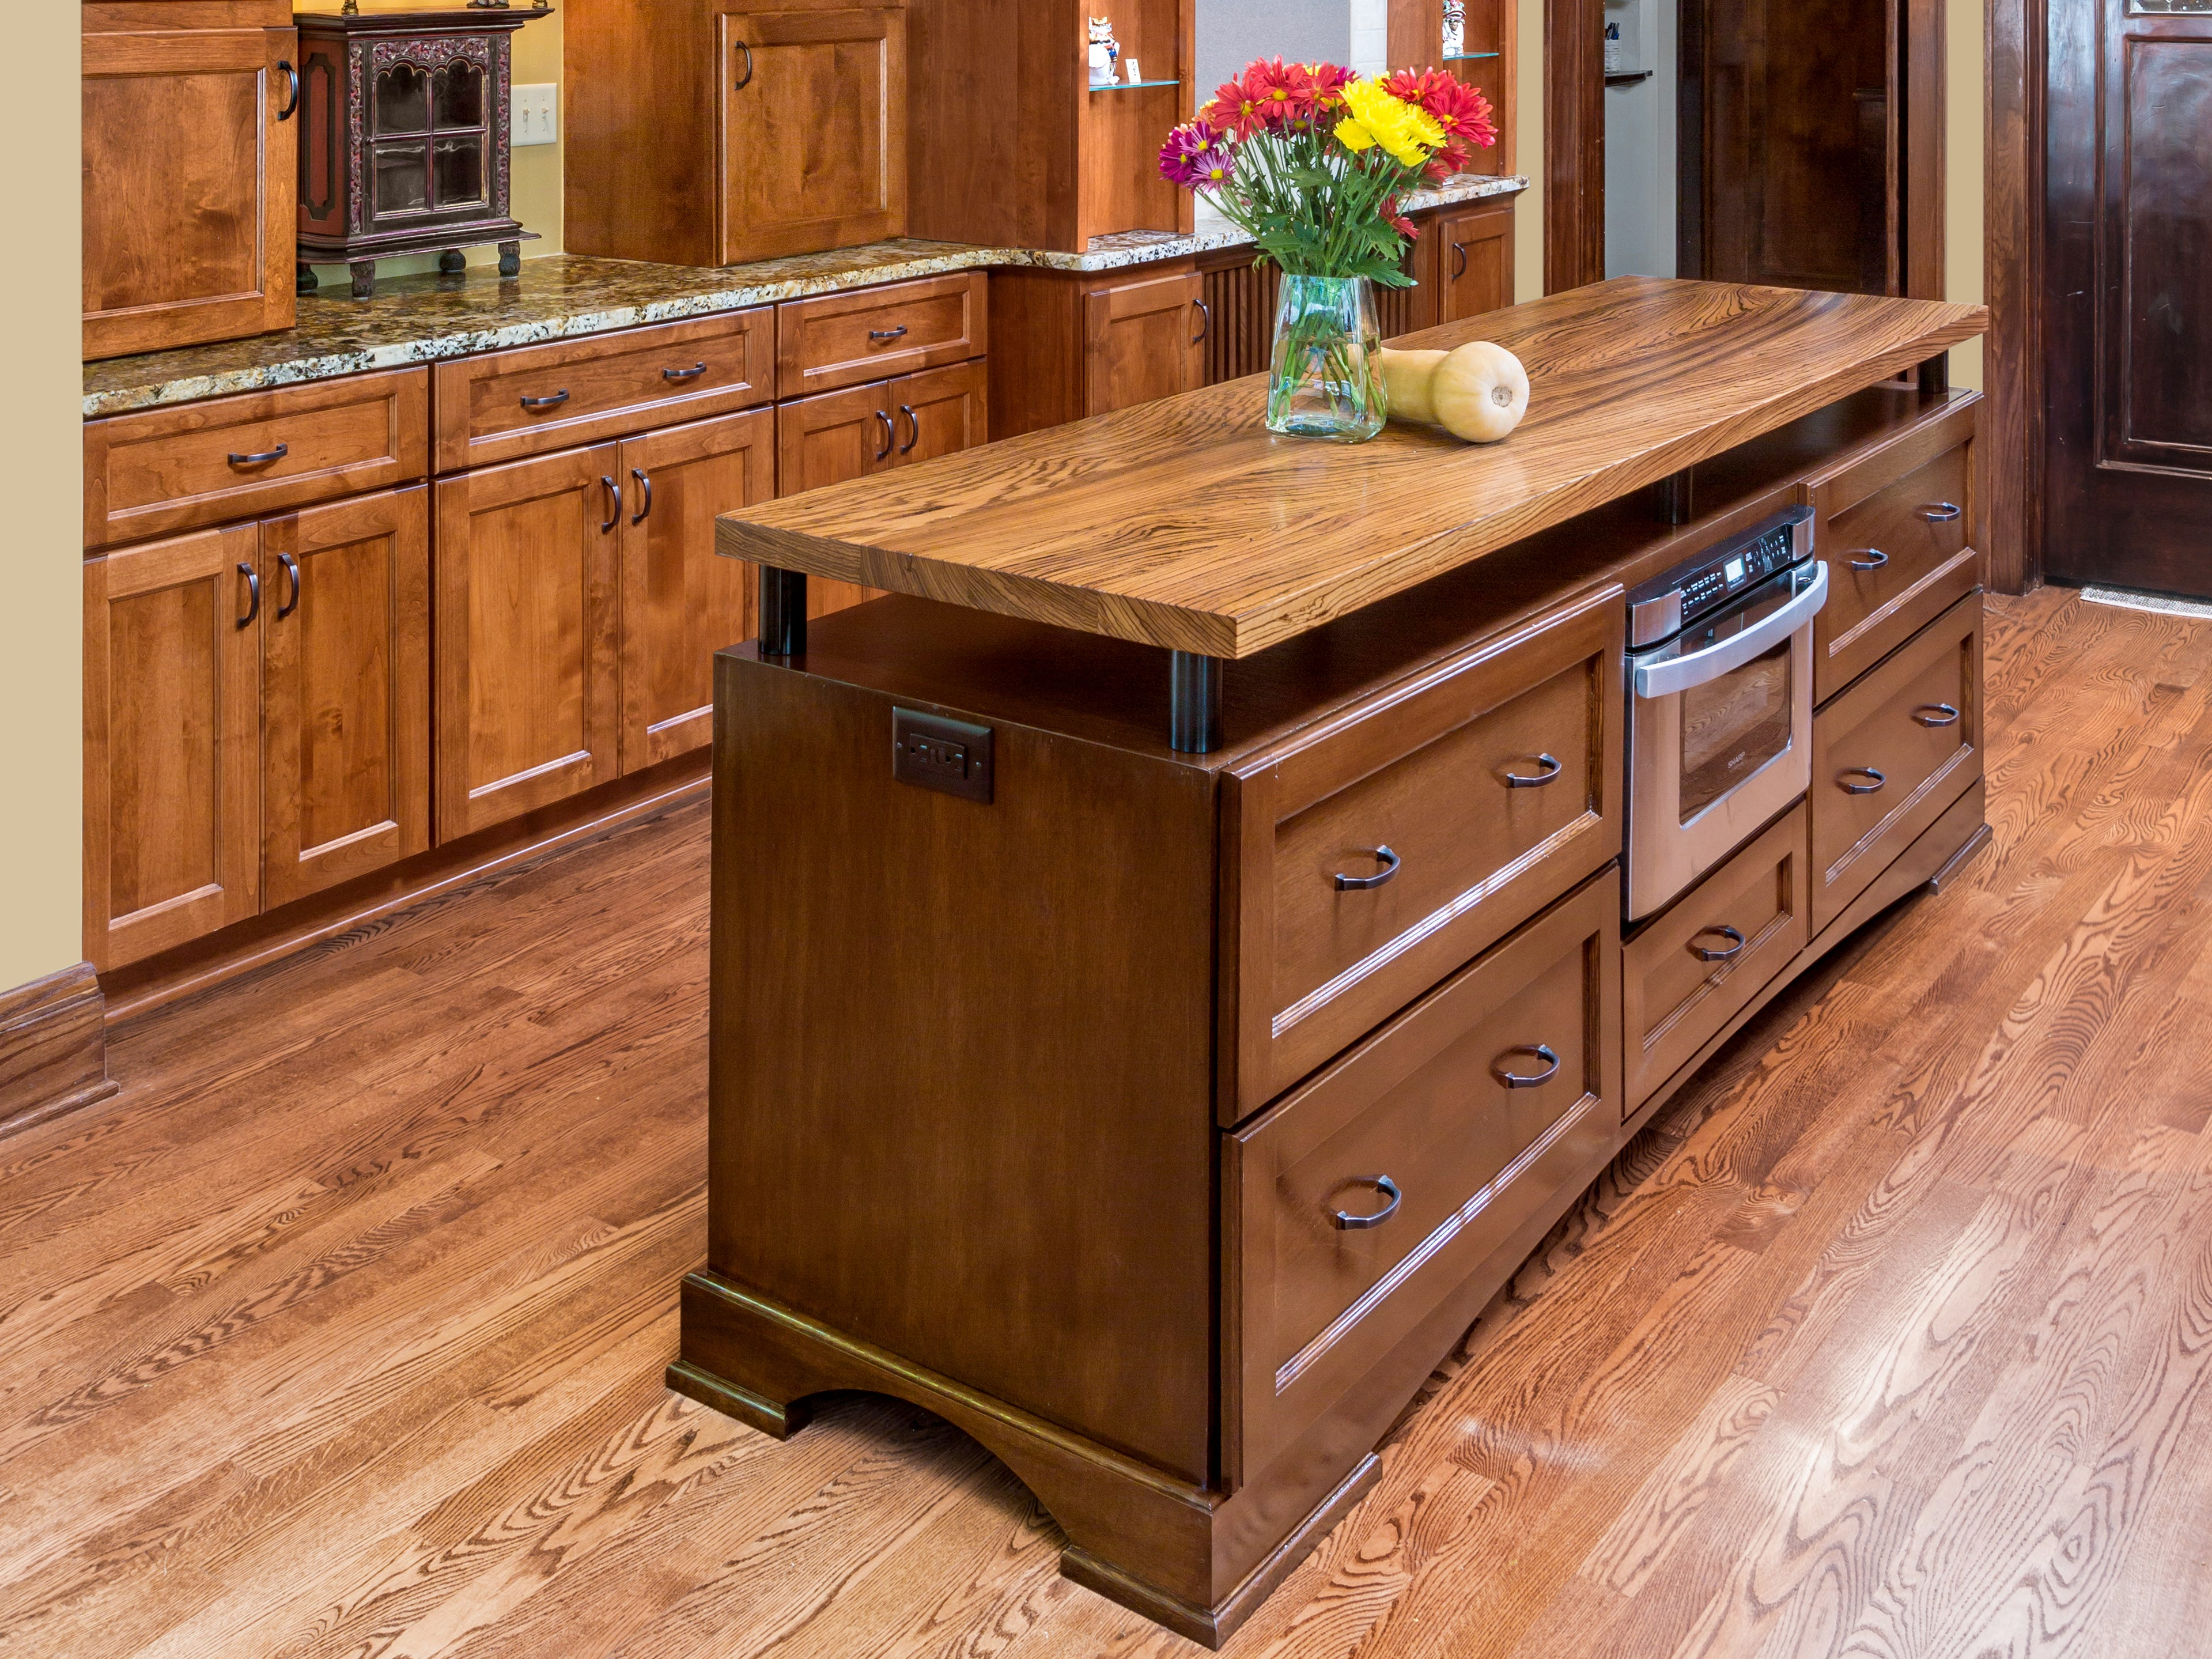 With a floating Zebrawood countertop, large drawers, and furniture style base, this island takes on the look of a custom piece of furniture.